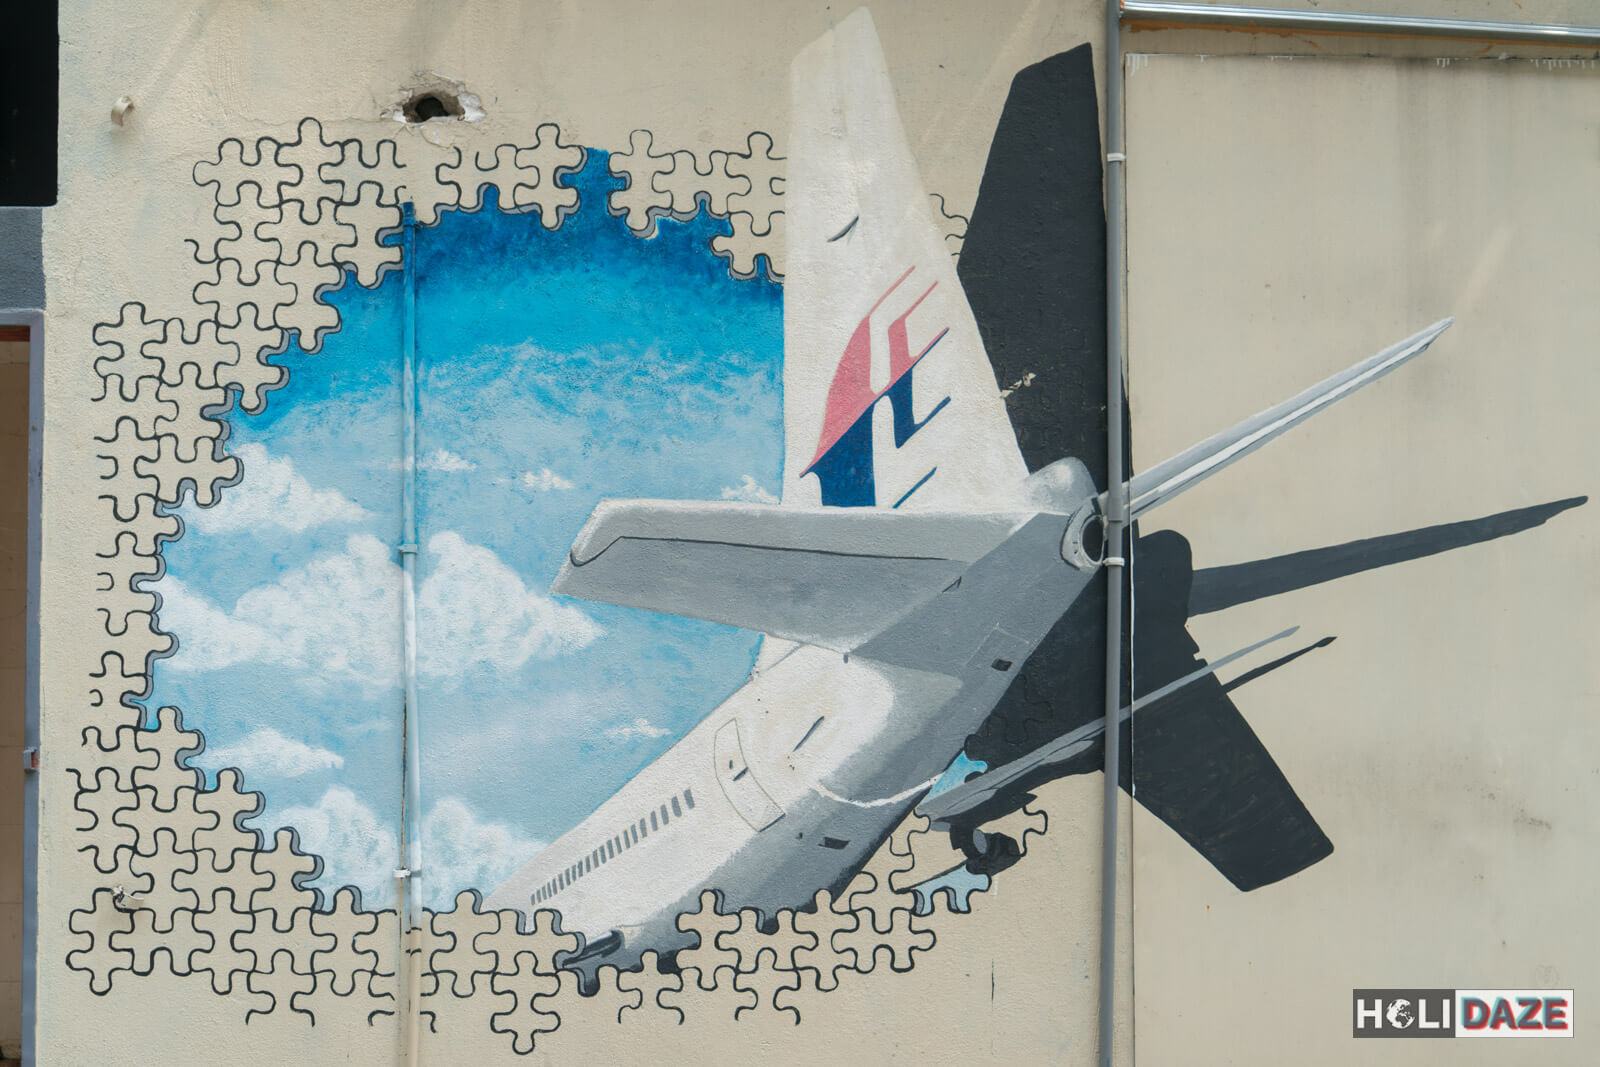 Shah Alam street art at Laman Seni 7 depicting the missing flight MH370